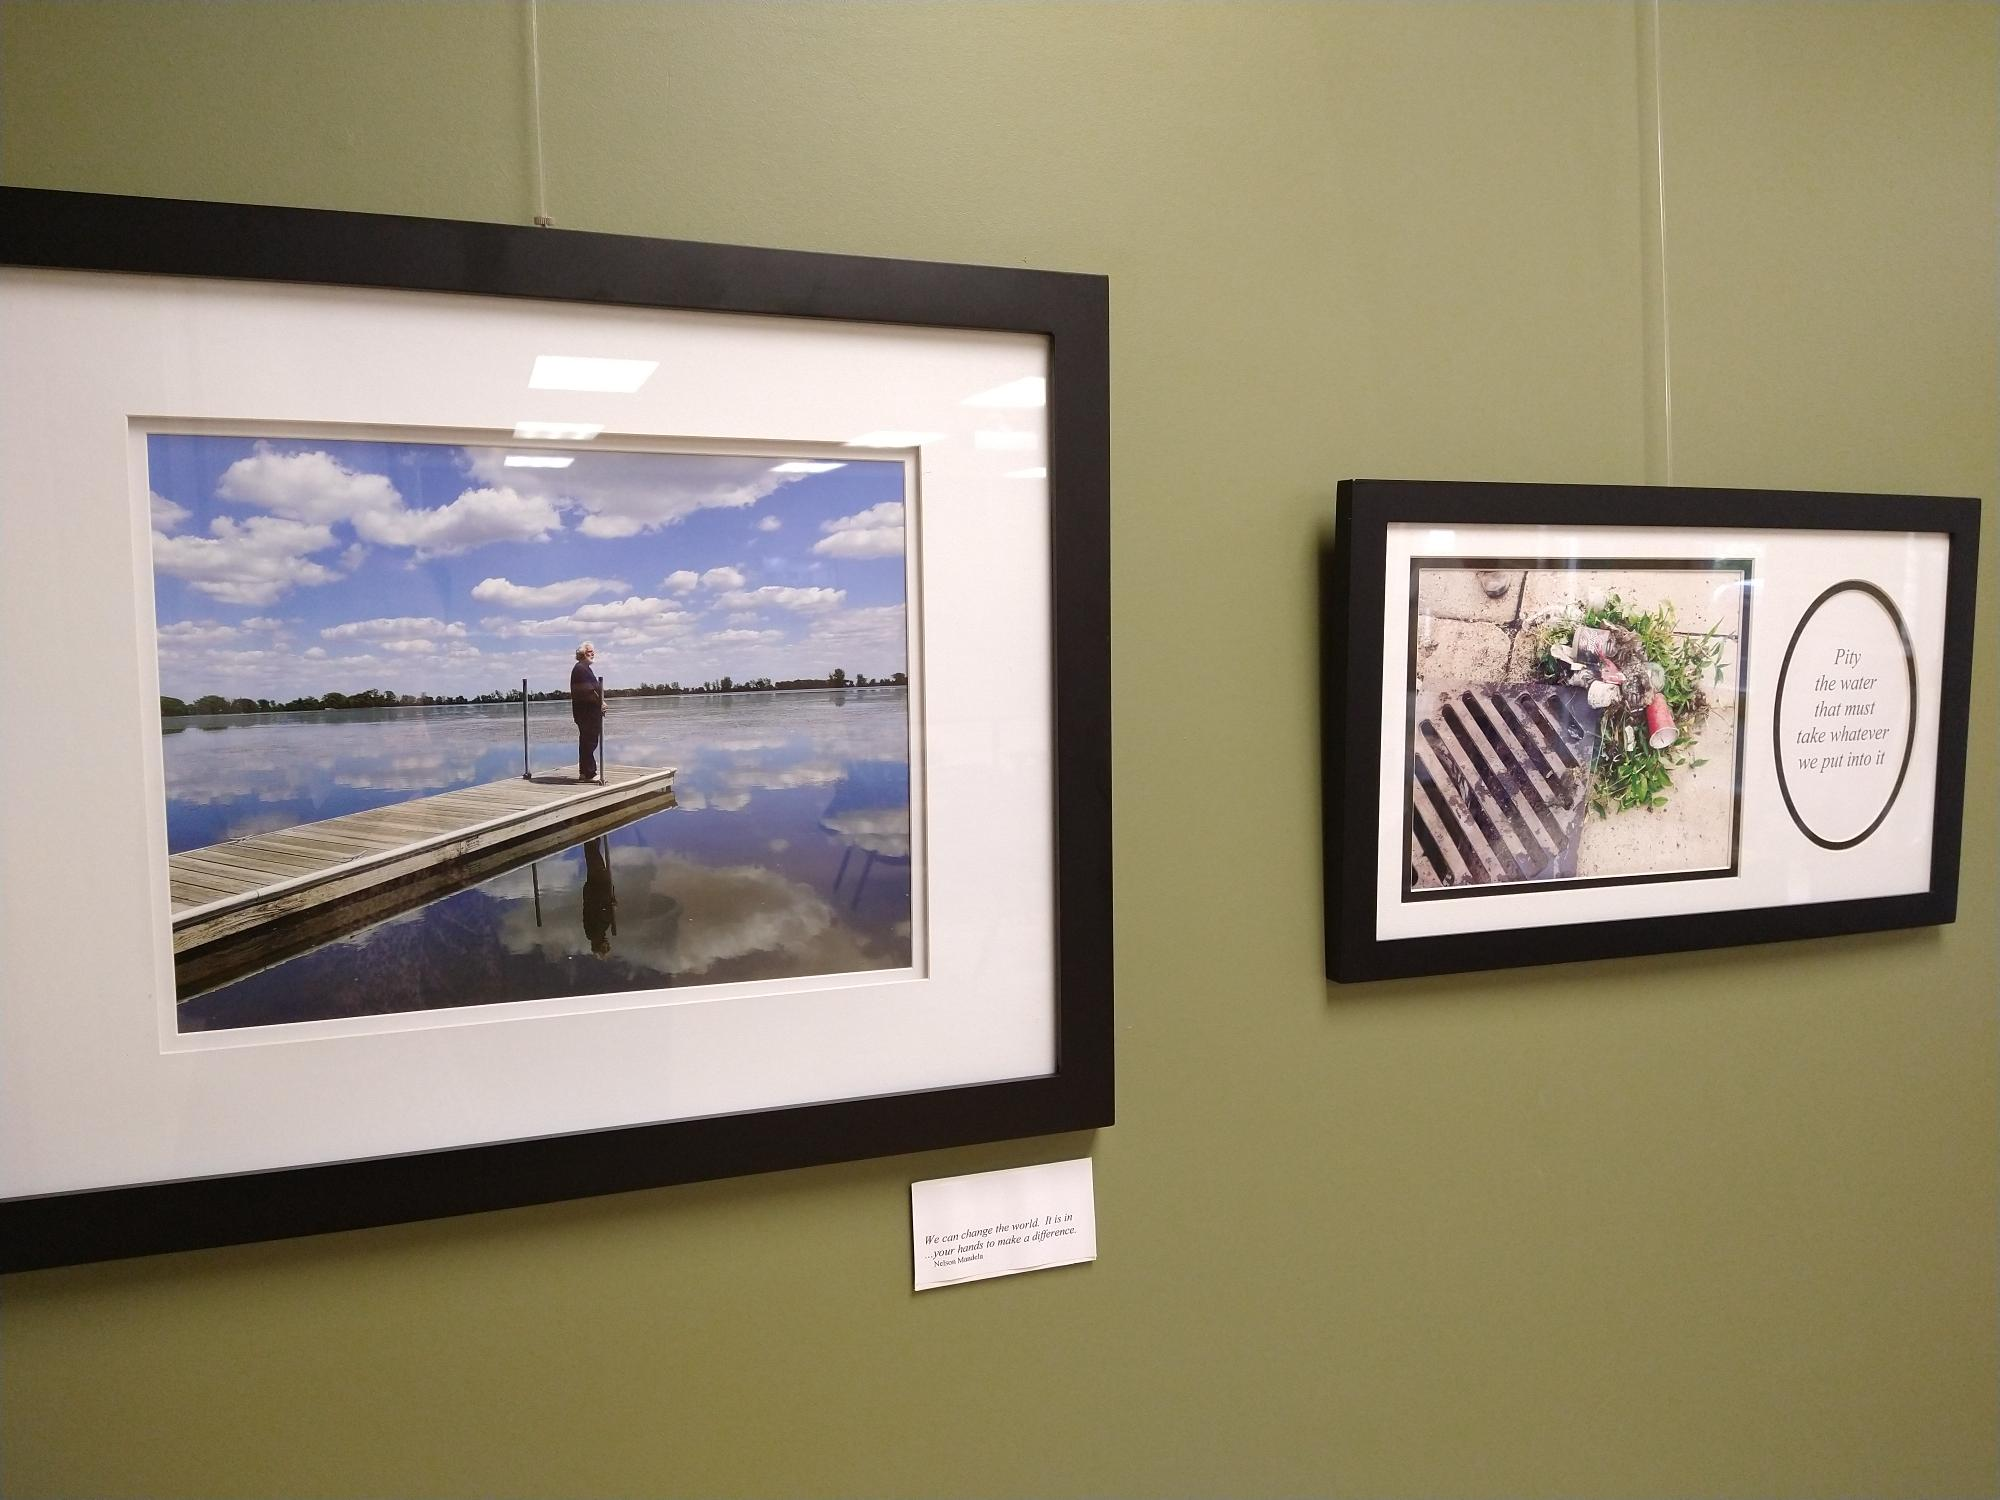 Two images from Kay Herbt Helms' exhibit Pity The Water.